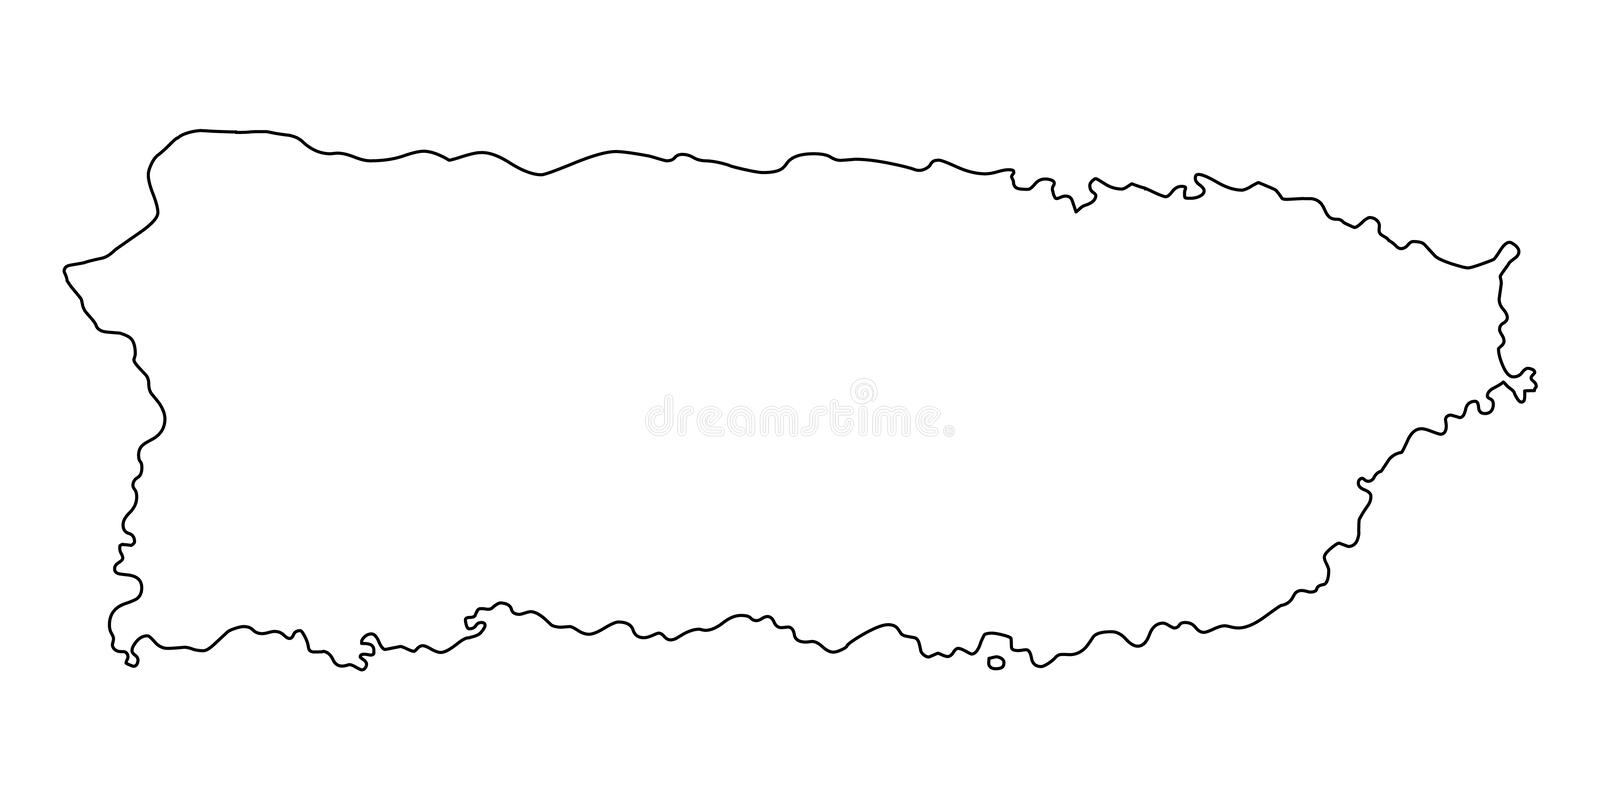 Puerto Rico map outline vector illustration royalty free illustration